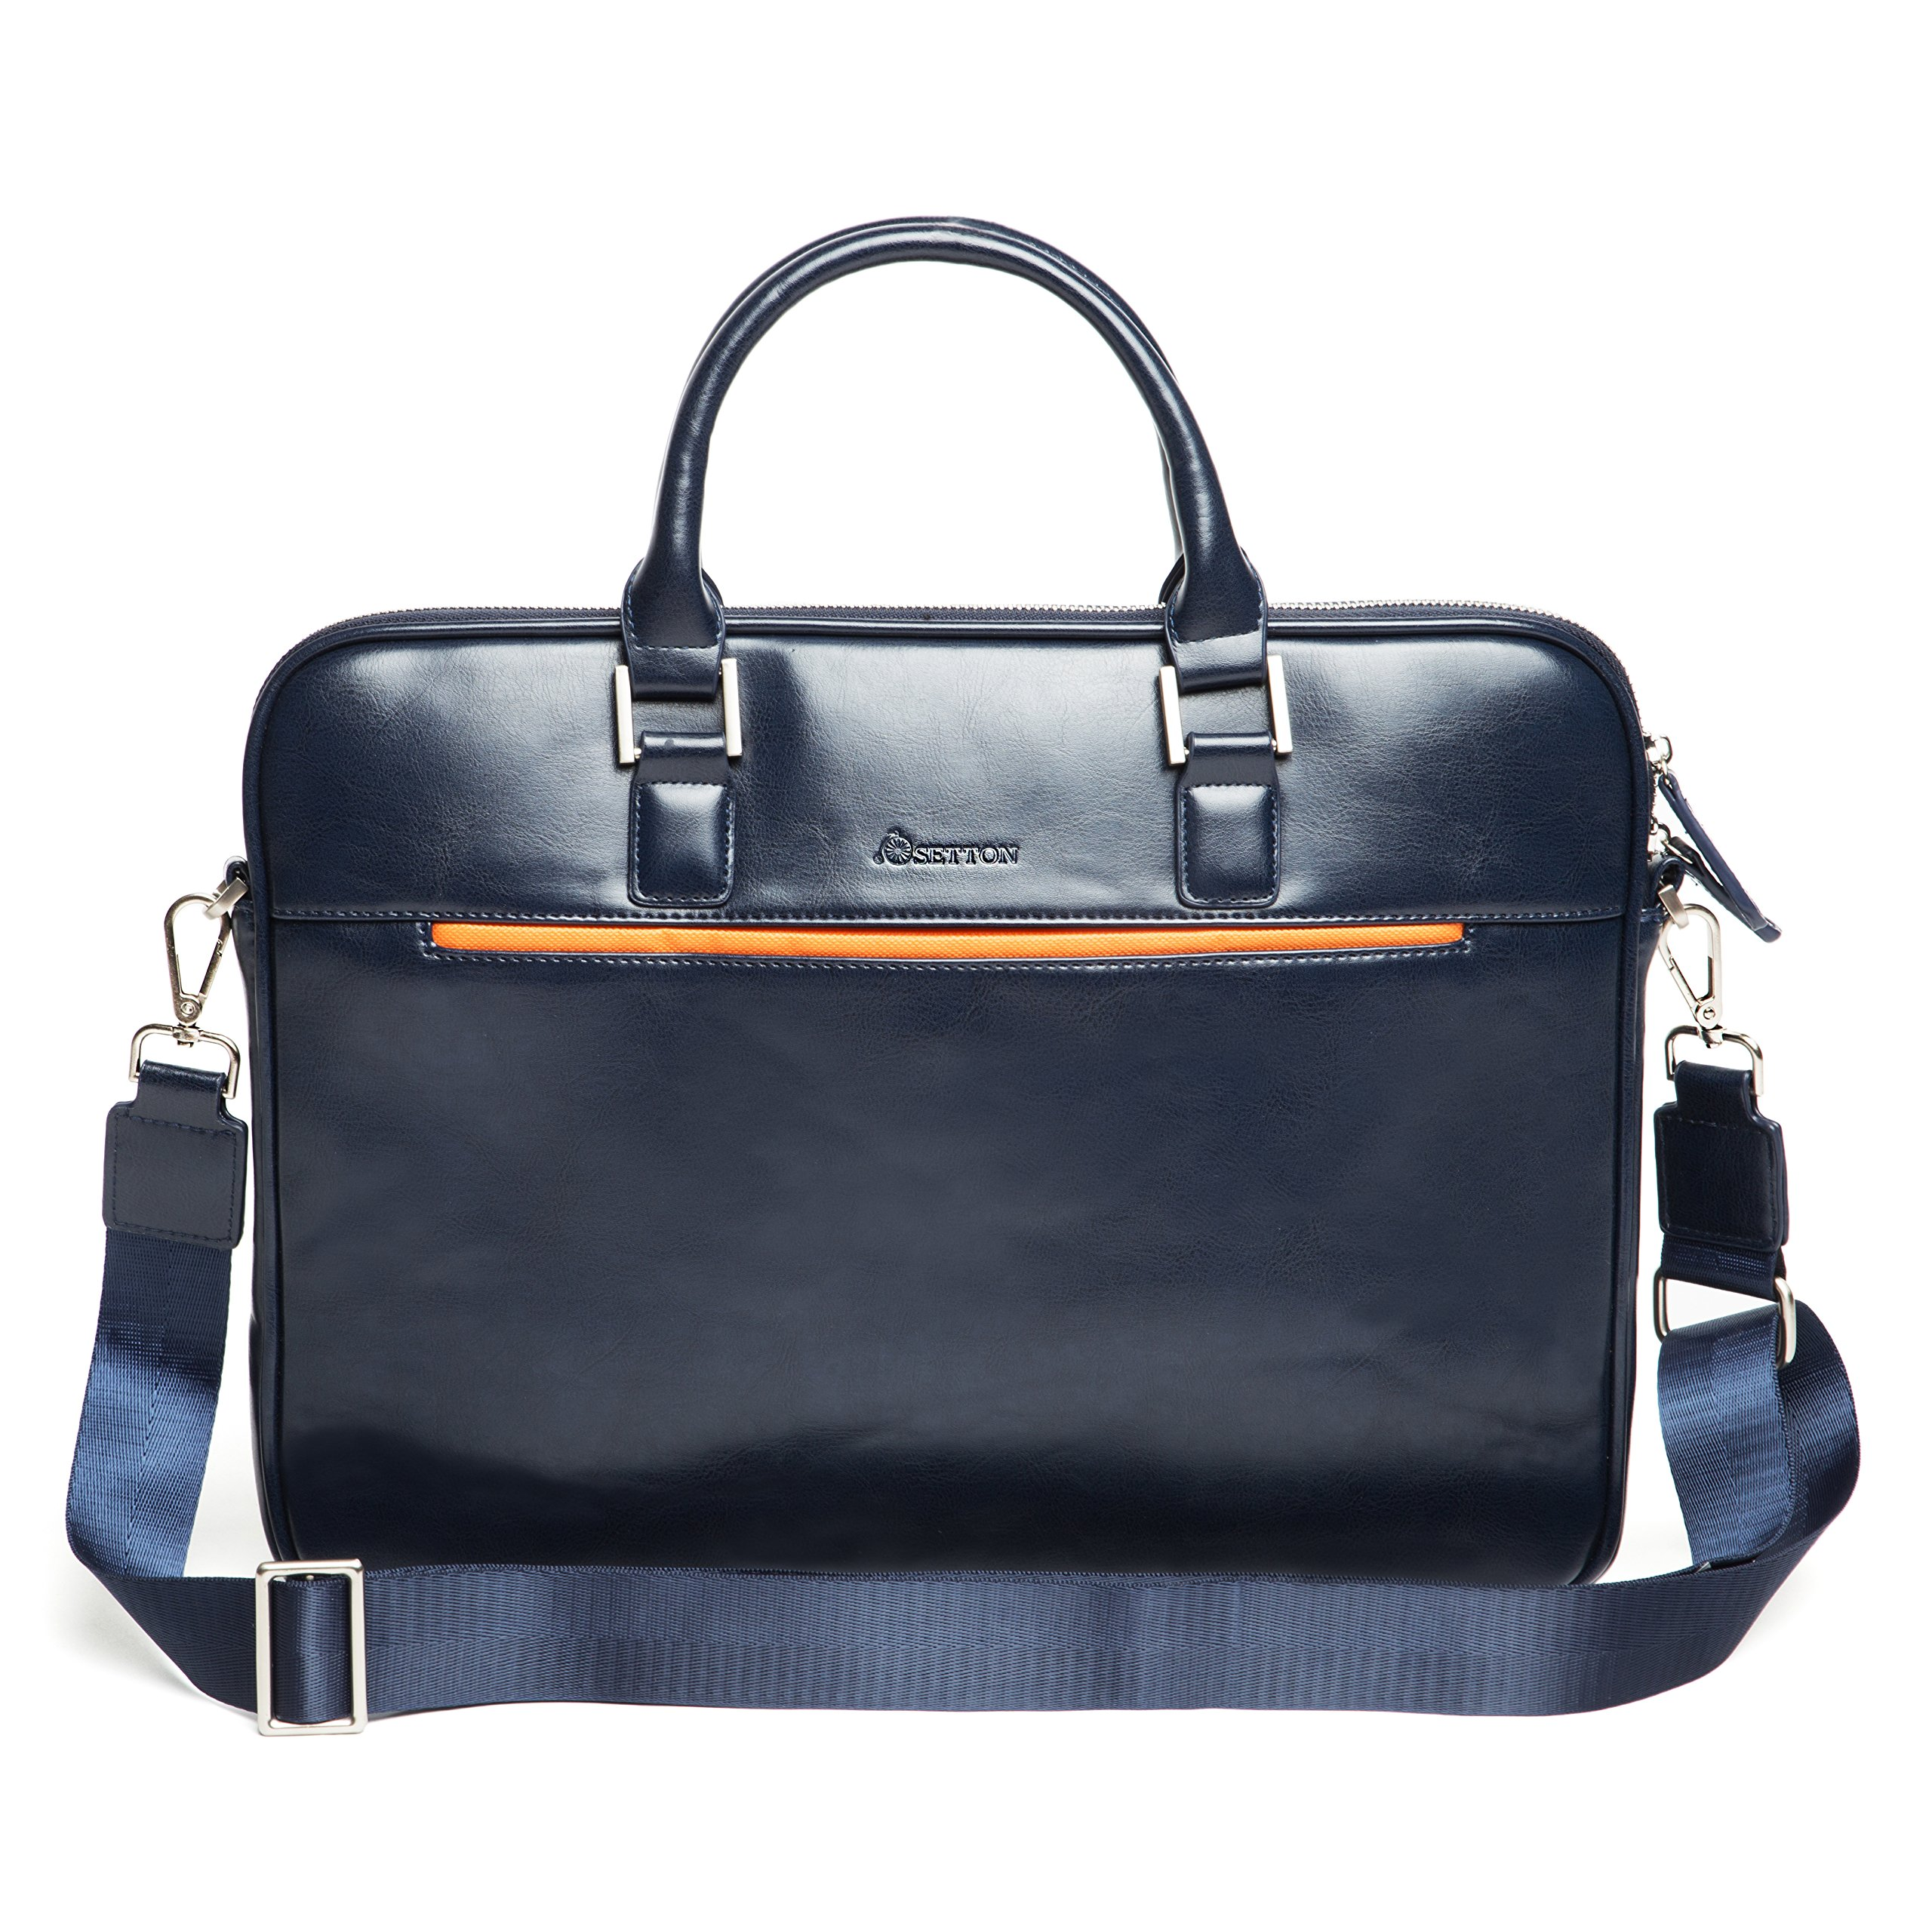 """Laptop Bag Briefcase Business Shoulder-Messenger - 13.3 Inch Slim Case, Travel for up 13"""" Computer - Notebook/ MacBook Air - Pro / iPad Pro 12.9/ Dell xps 13/ Tablet For Men by SettonBrothers - Blue"""